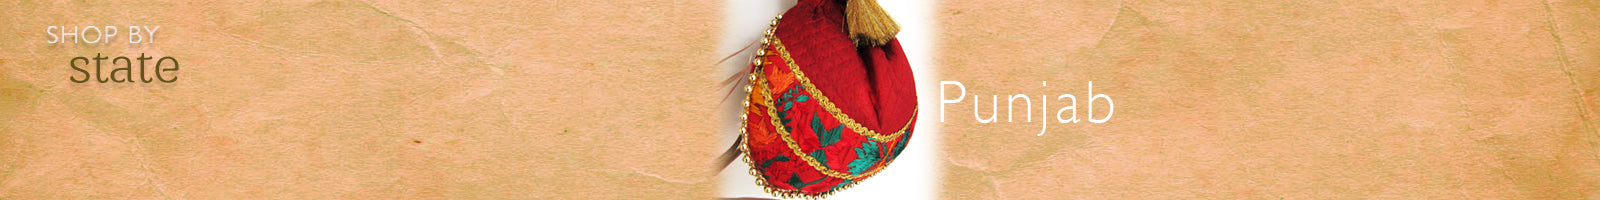 Buy Indian Handicrafts Online at The India Craft House for the perfect gift. Authentic handcrafted Arts & Crafts from Punjab. Support the Artisan. Promote Fair Trade